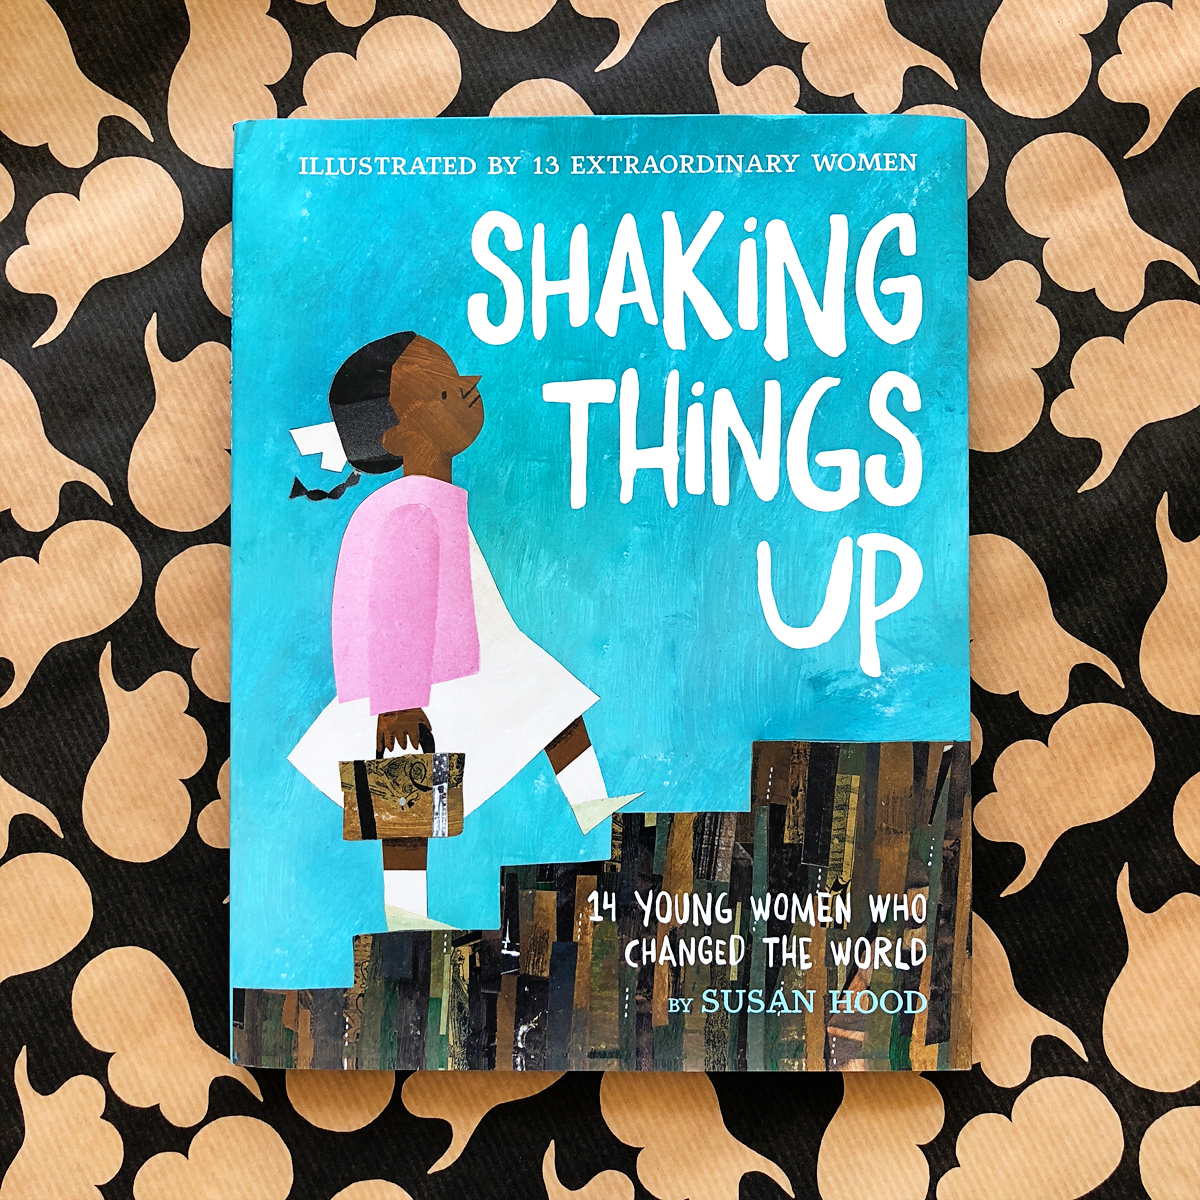 Shaking Things Up: 14 Young Women Who Changed the World | Books For Diversity